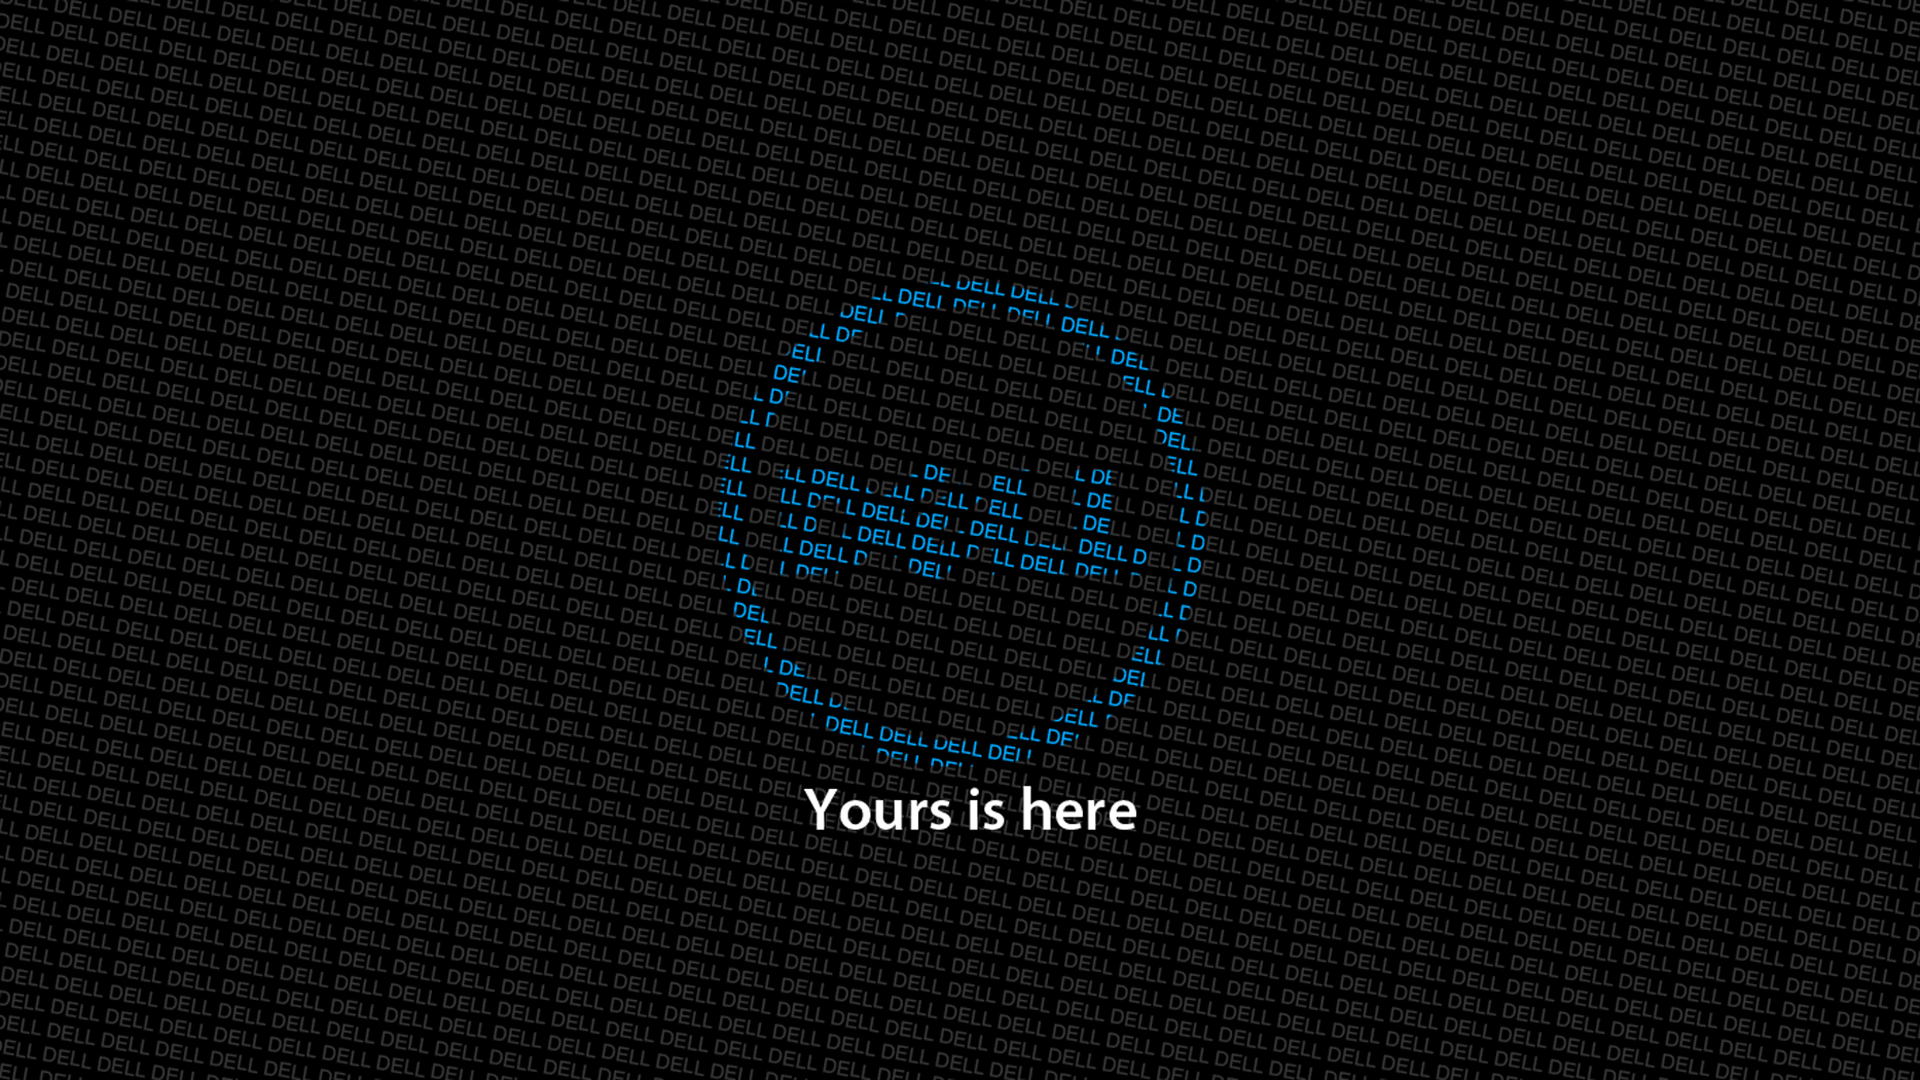 dell desktop wallpaper 58777